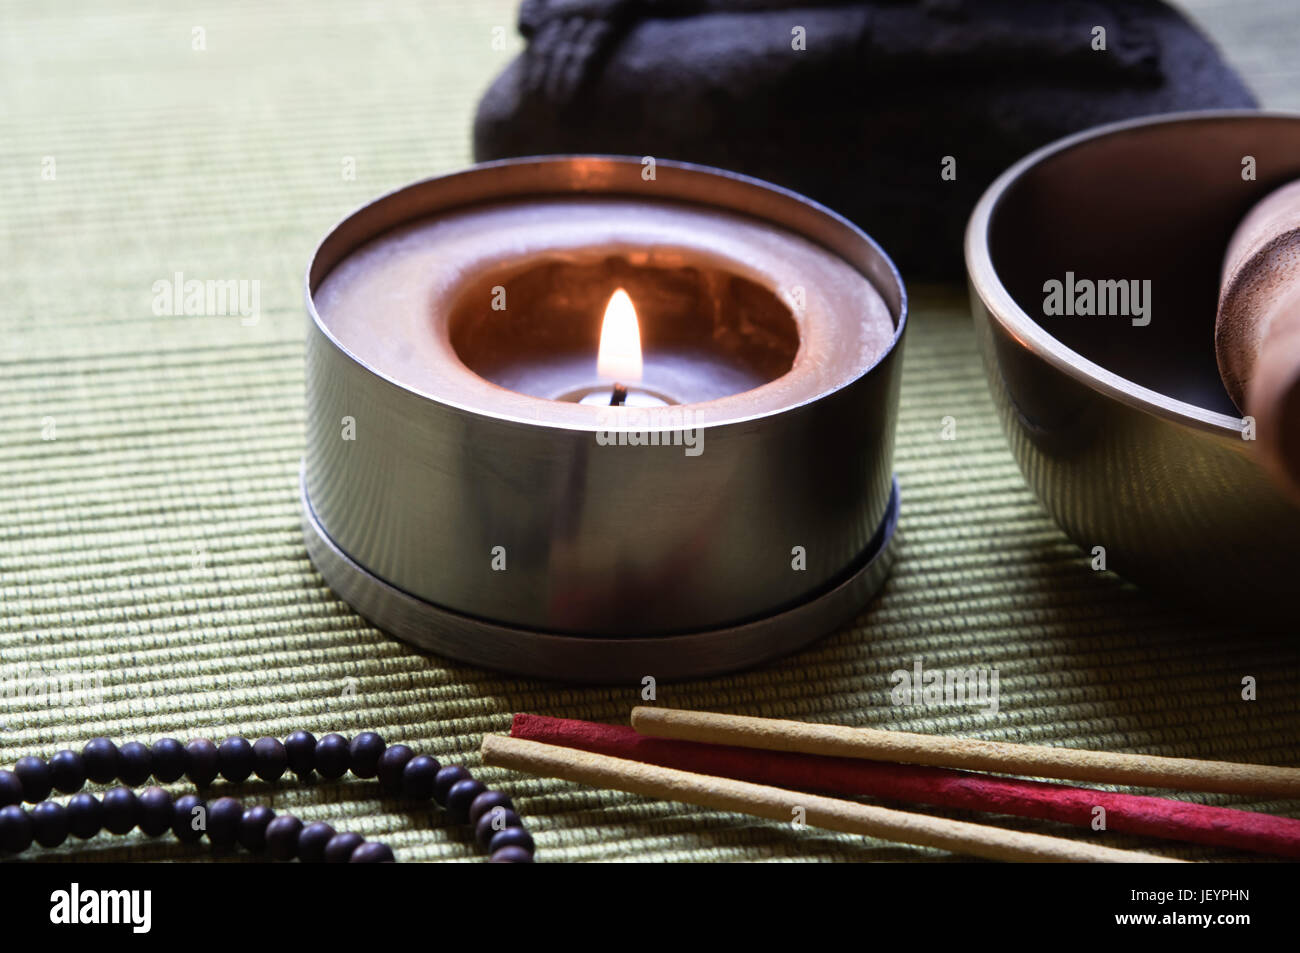 Close up of a collection of Buddhist's objects (candle, josticks, prayer beads and singing bowl), with part - Stock Image